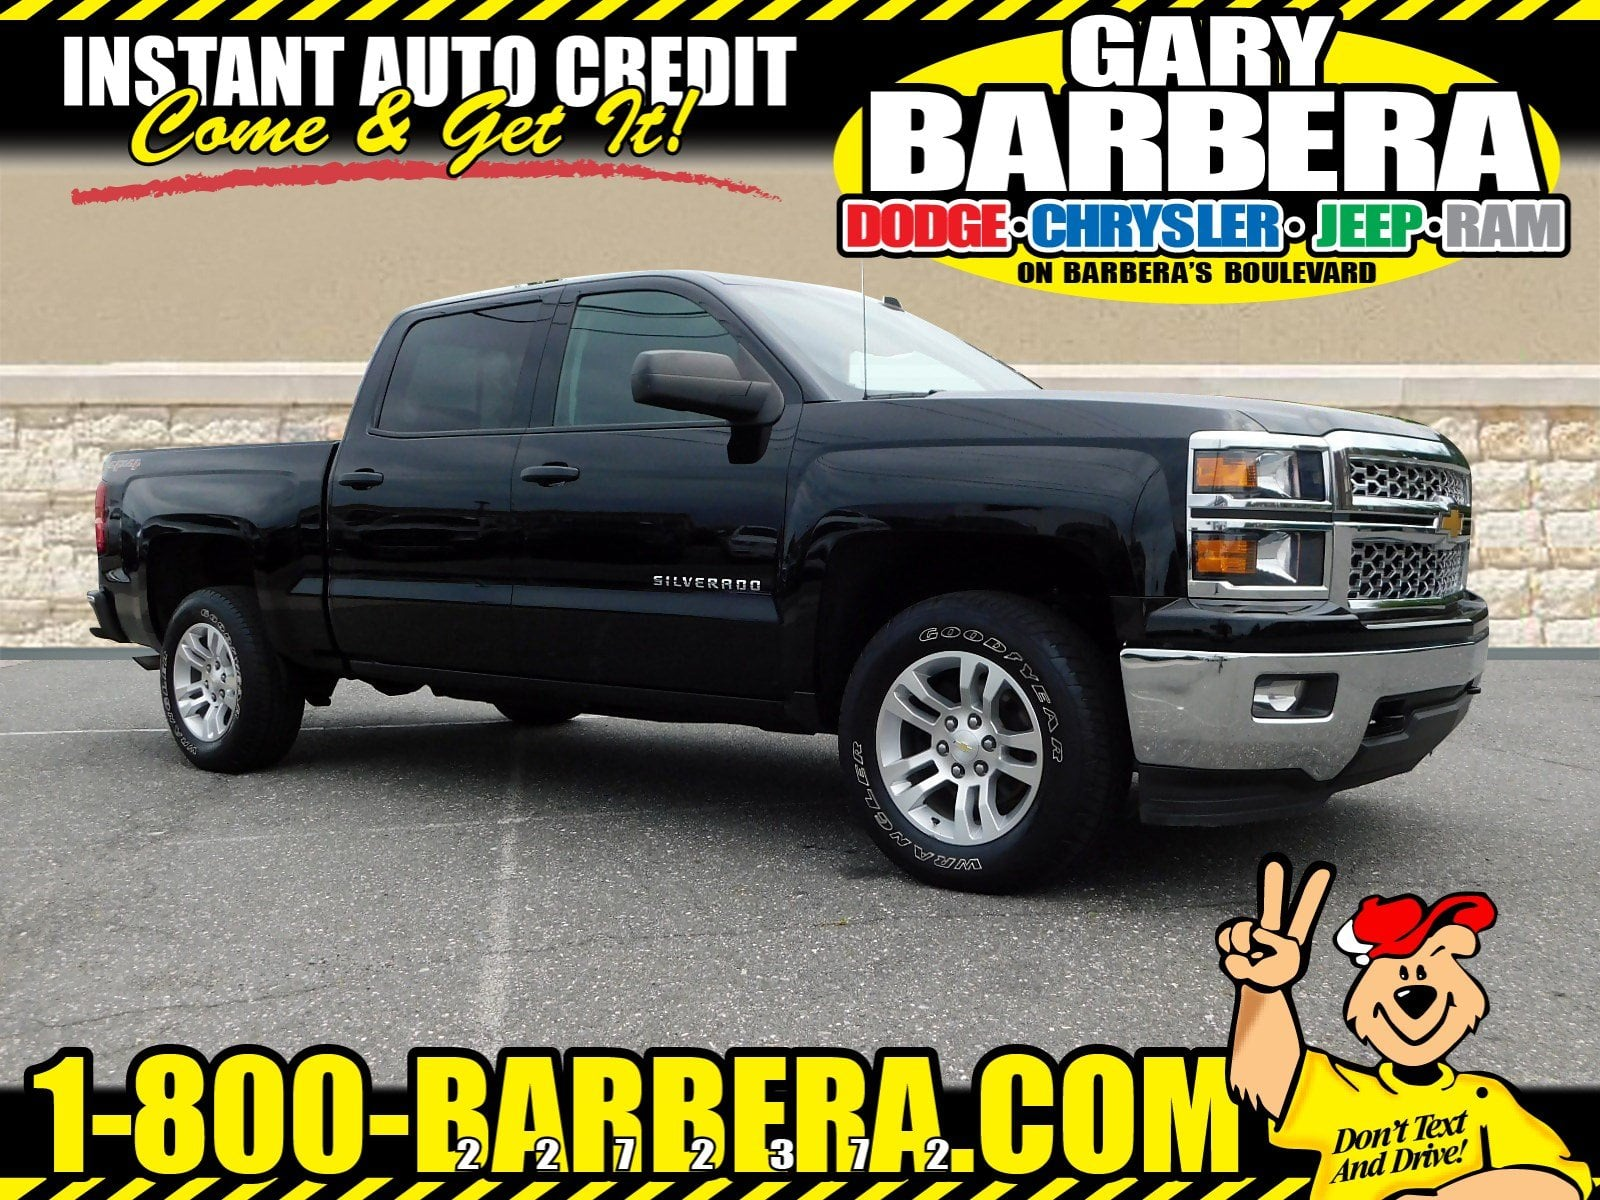 2014 Chevrolet Silverado 1500 LT photo